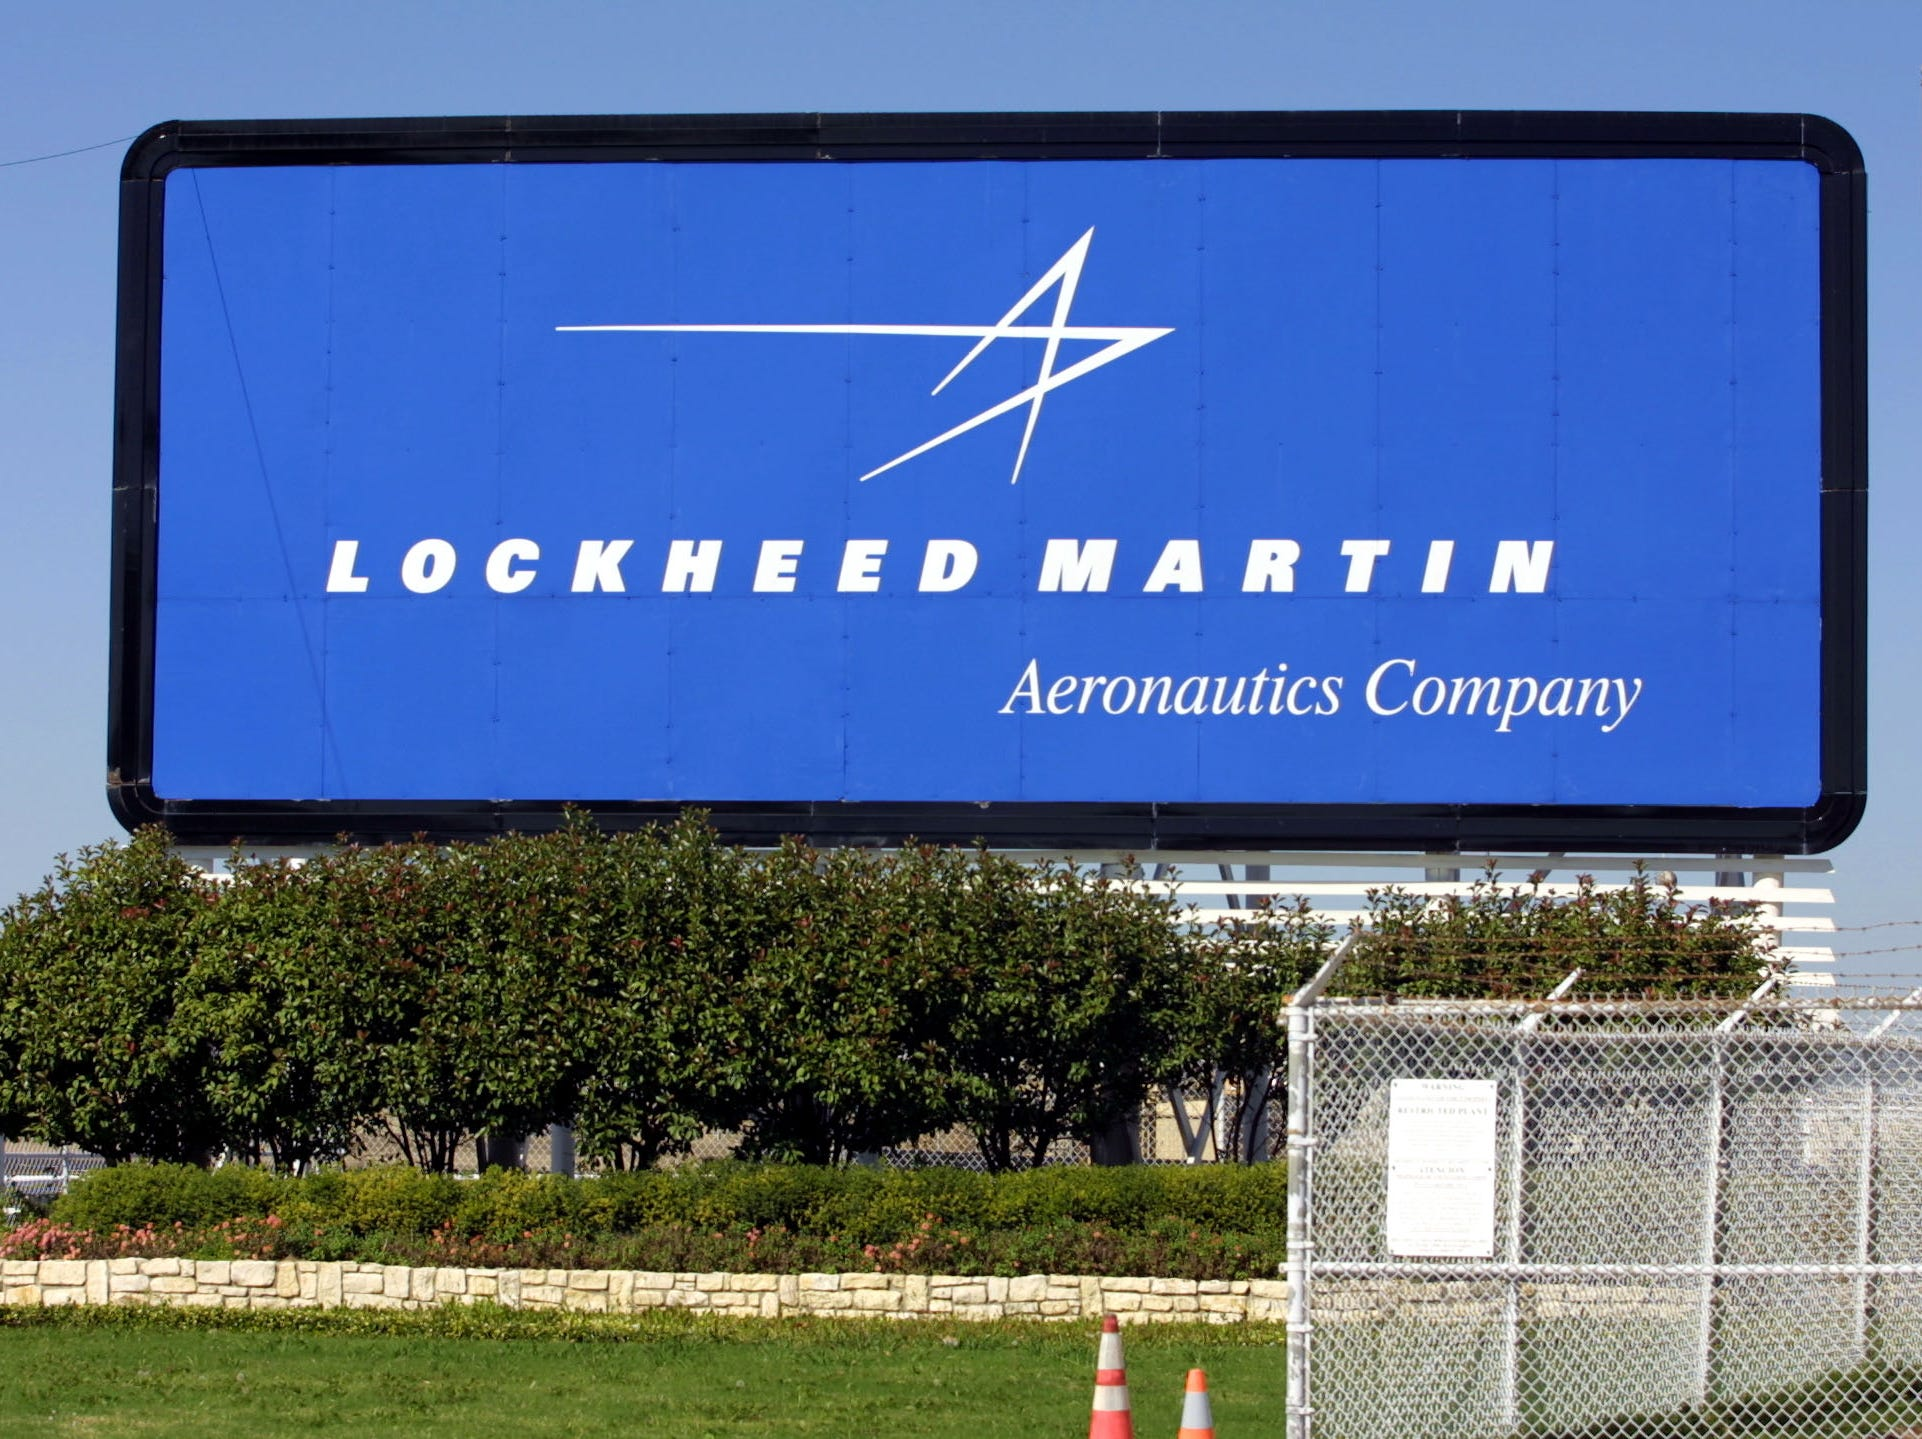 Lockheed Martin, hiring 130. The defense manufacturer has openings ranging from material handler to systems administrator. More info: lockheedmartinjobs.com.